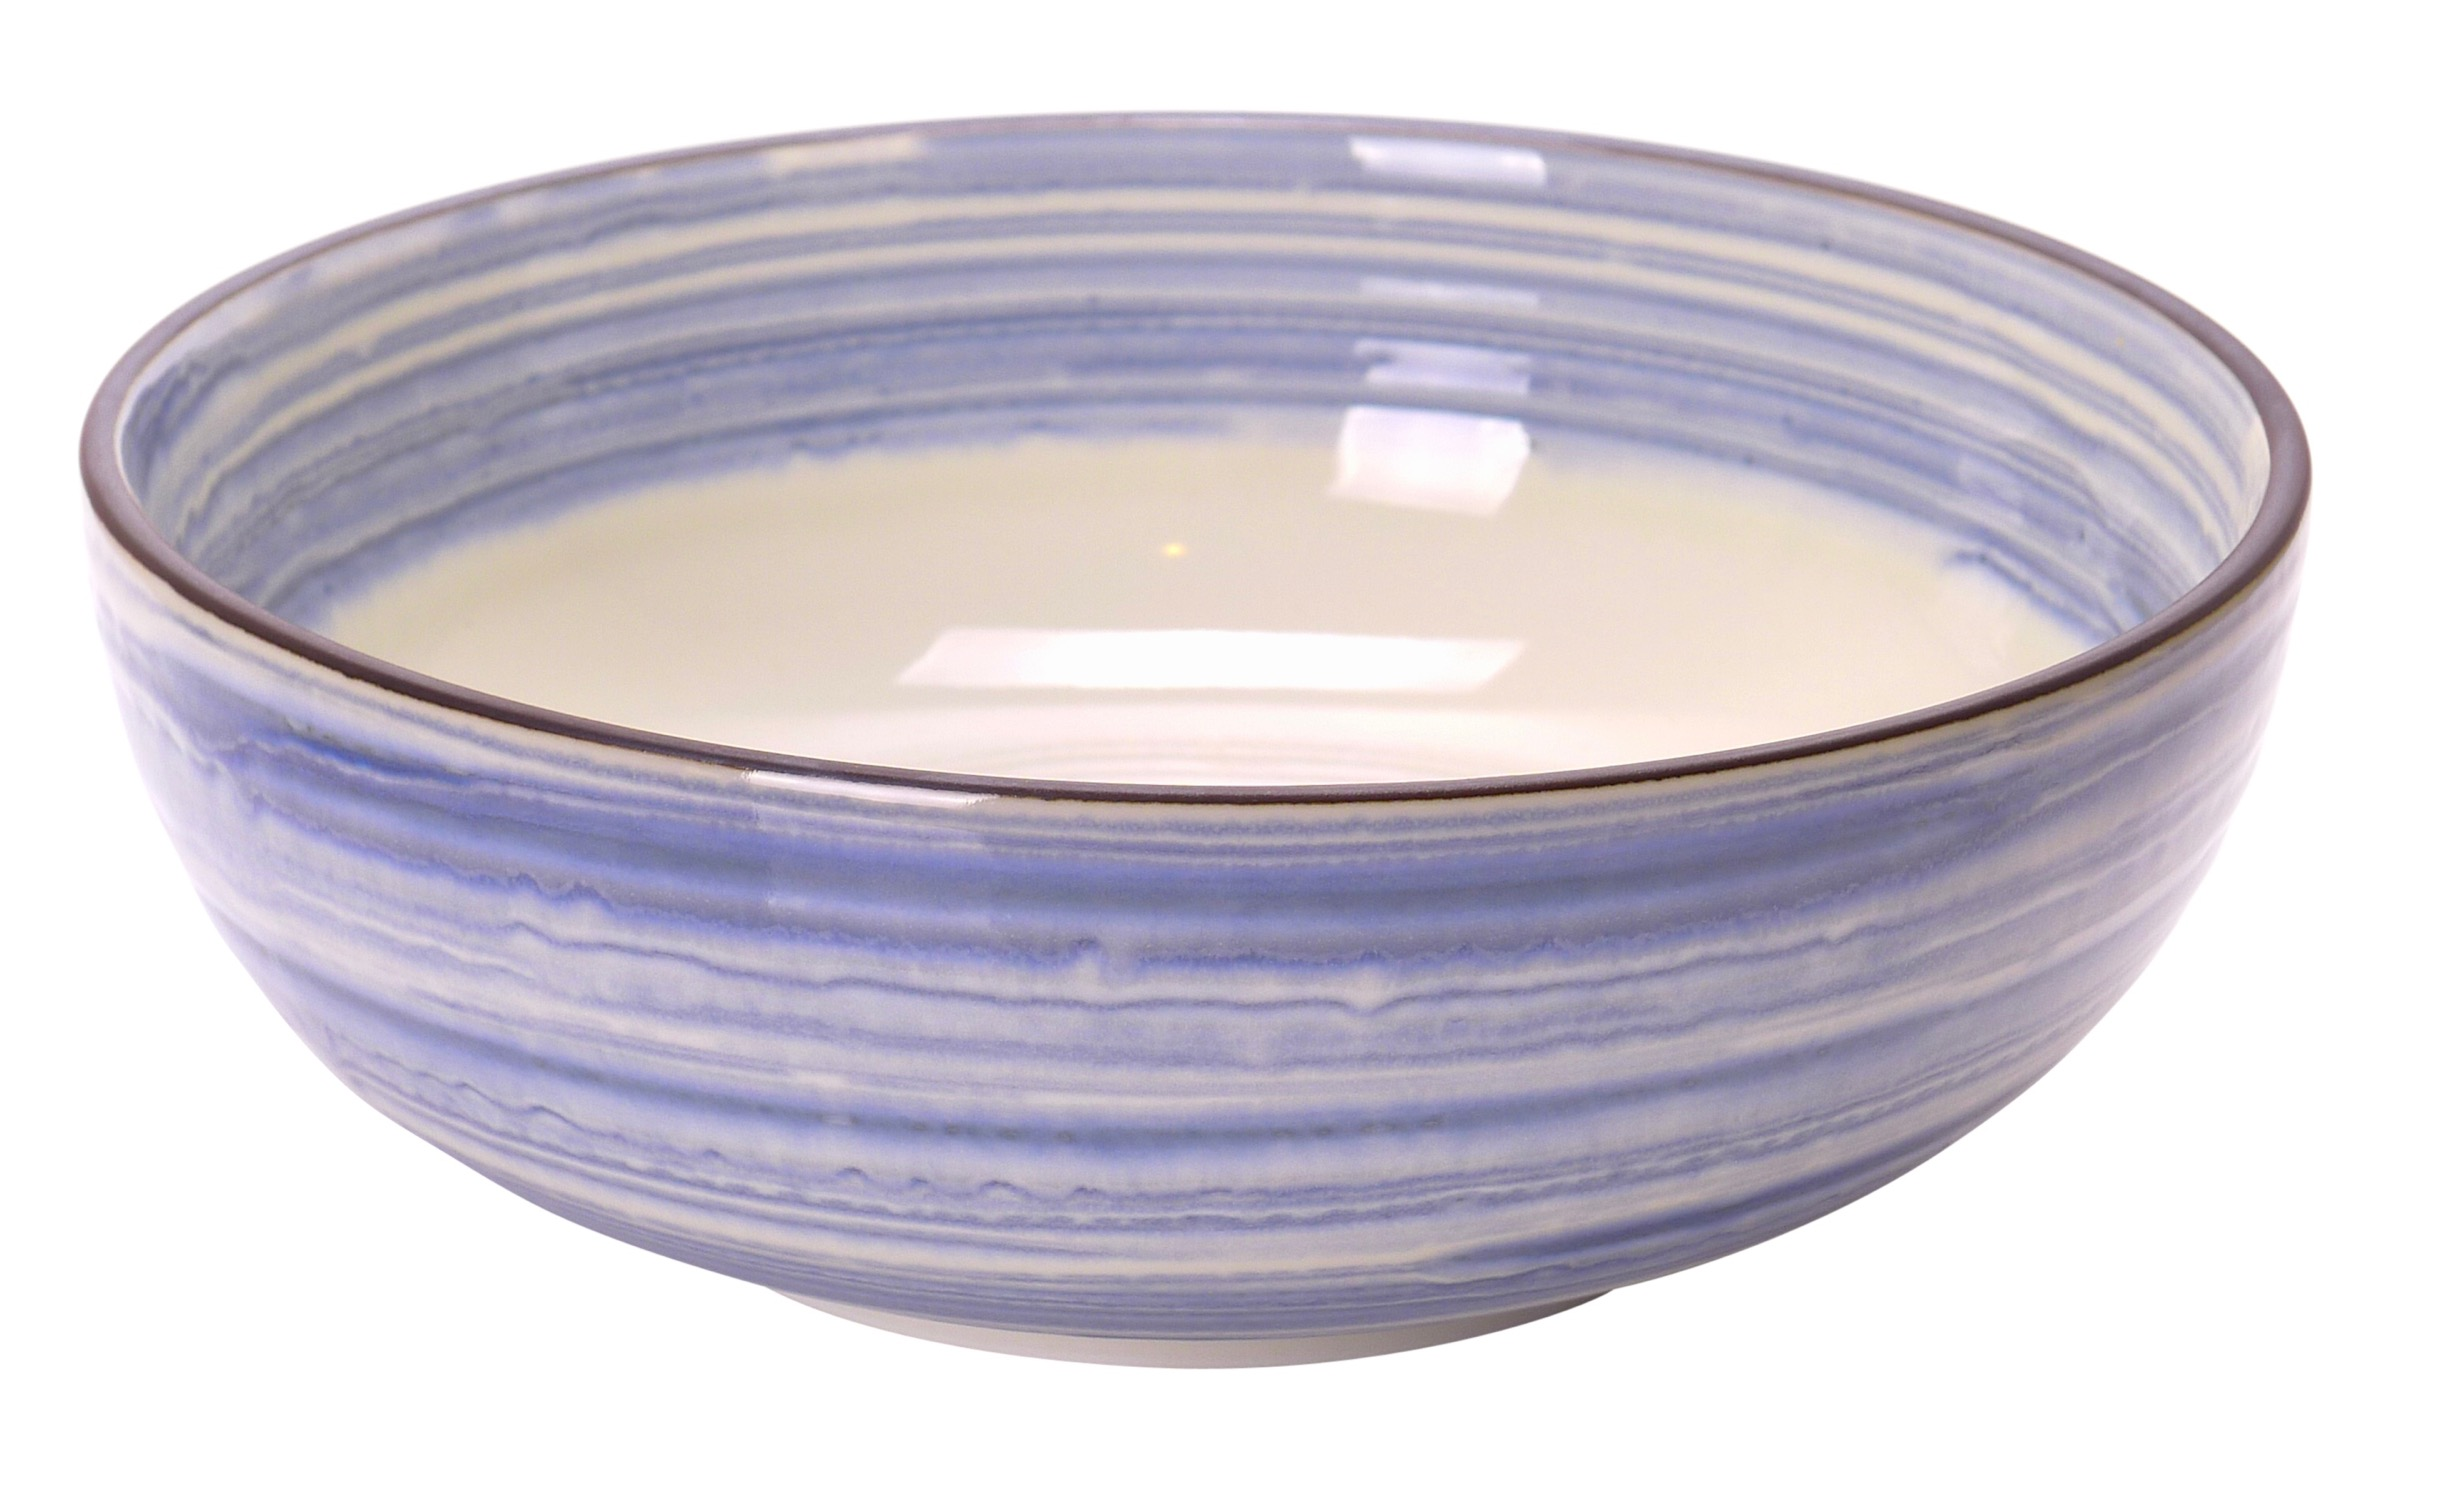 Image of White Porcelain Salad Serving Bowls with Blue Wash Handpainting 7.75x2